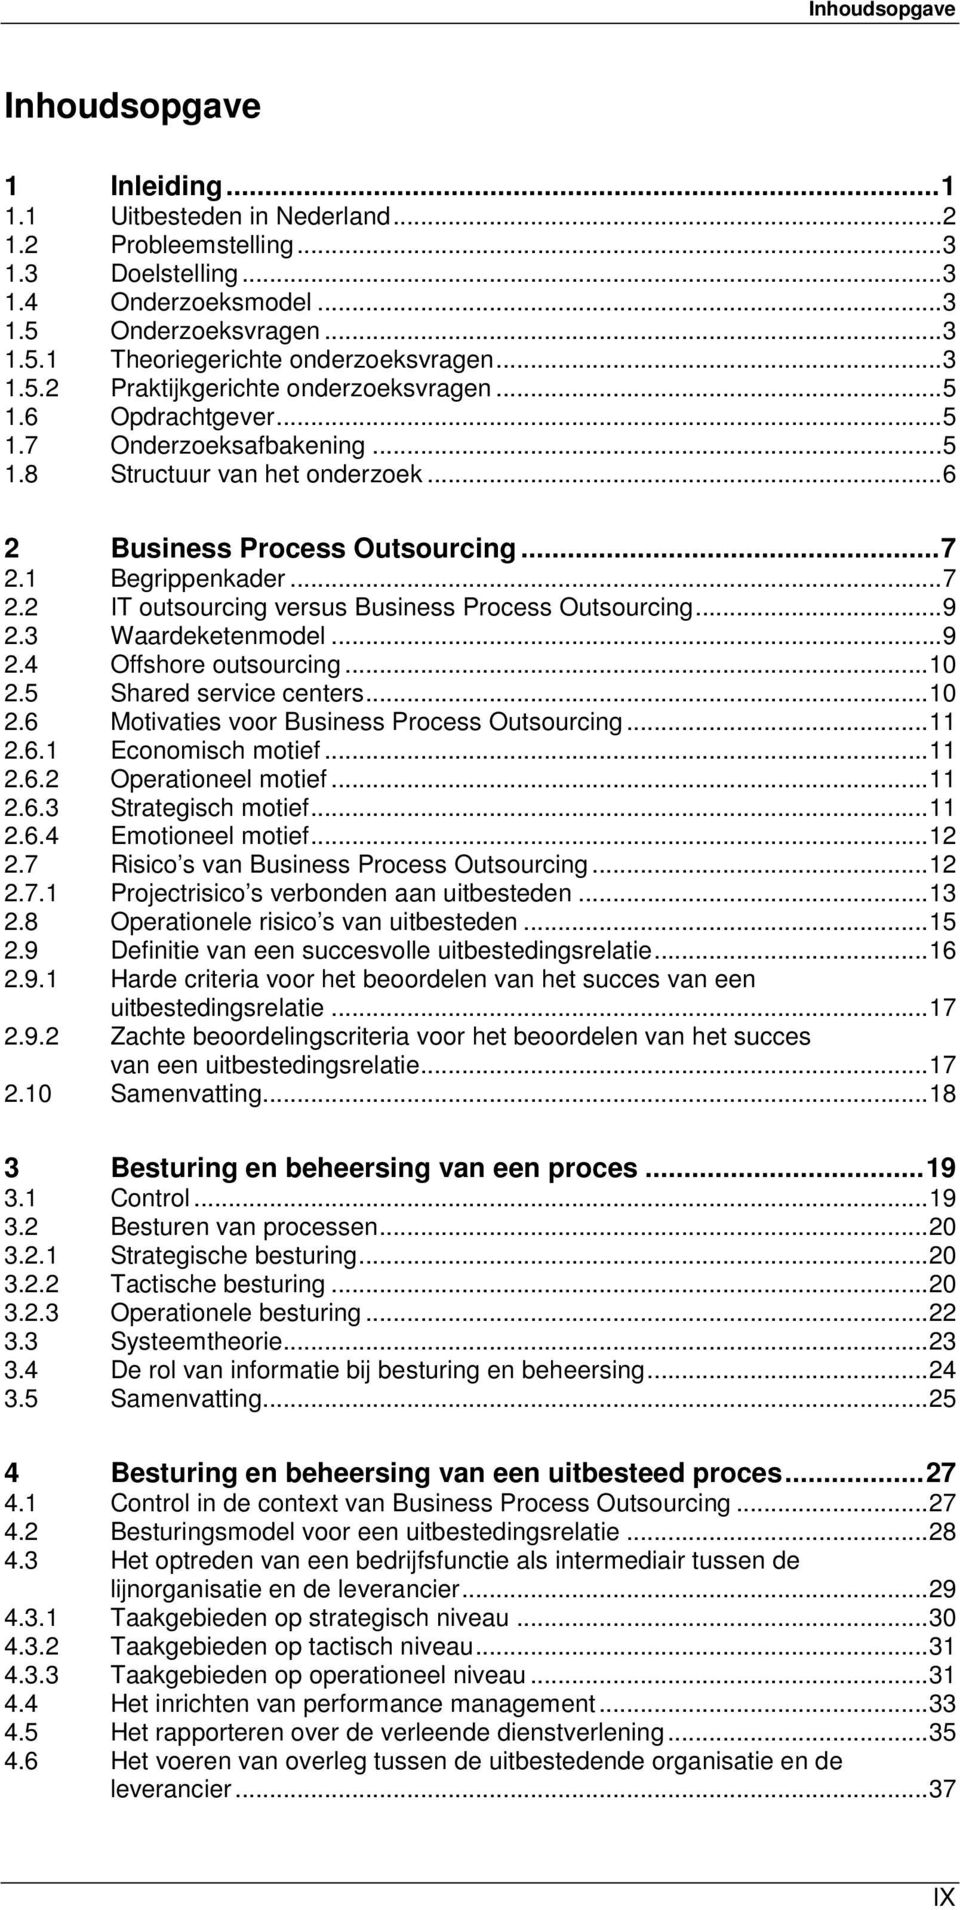 1 Begrippenkader...7 2.2 IT outsourcing versus Business Process Outsourcing...9 2.3 Waardeketenmodel...9 2.4 Offshore outsourcing...10 2.5 Shared service centers...10 2.6 Motivaties voor Business Process Outsourcing.